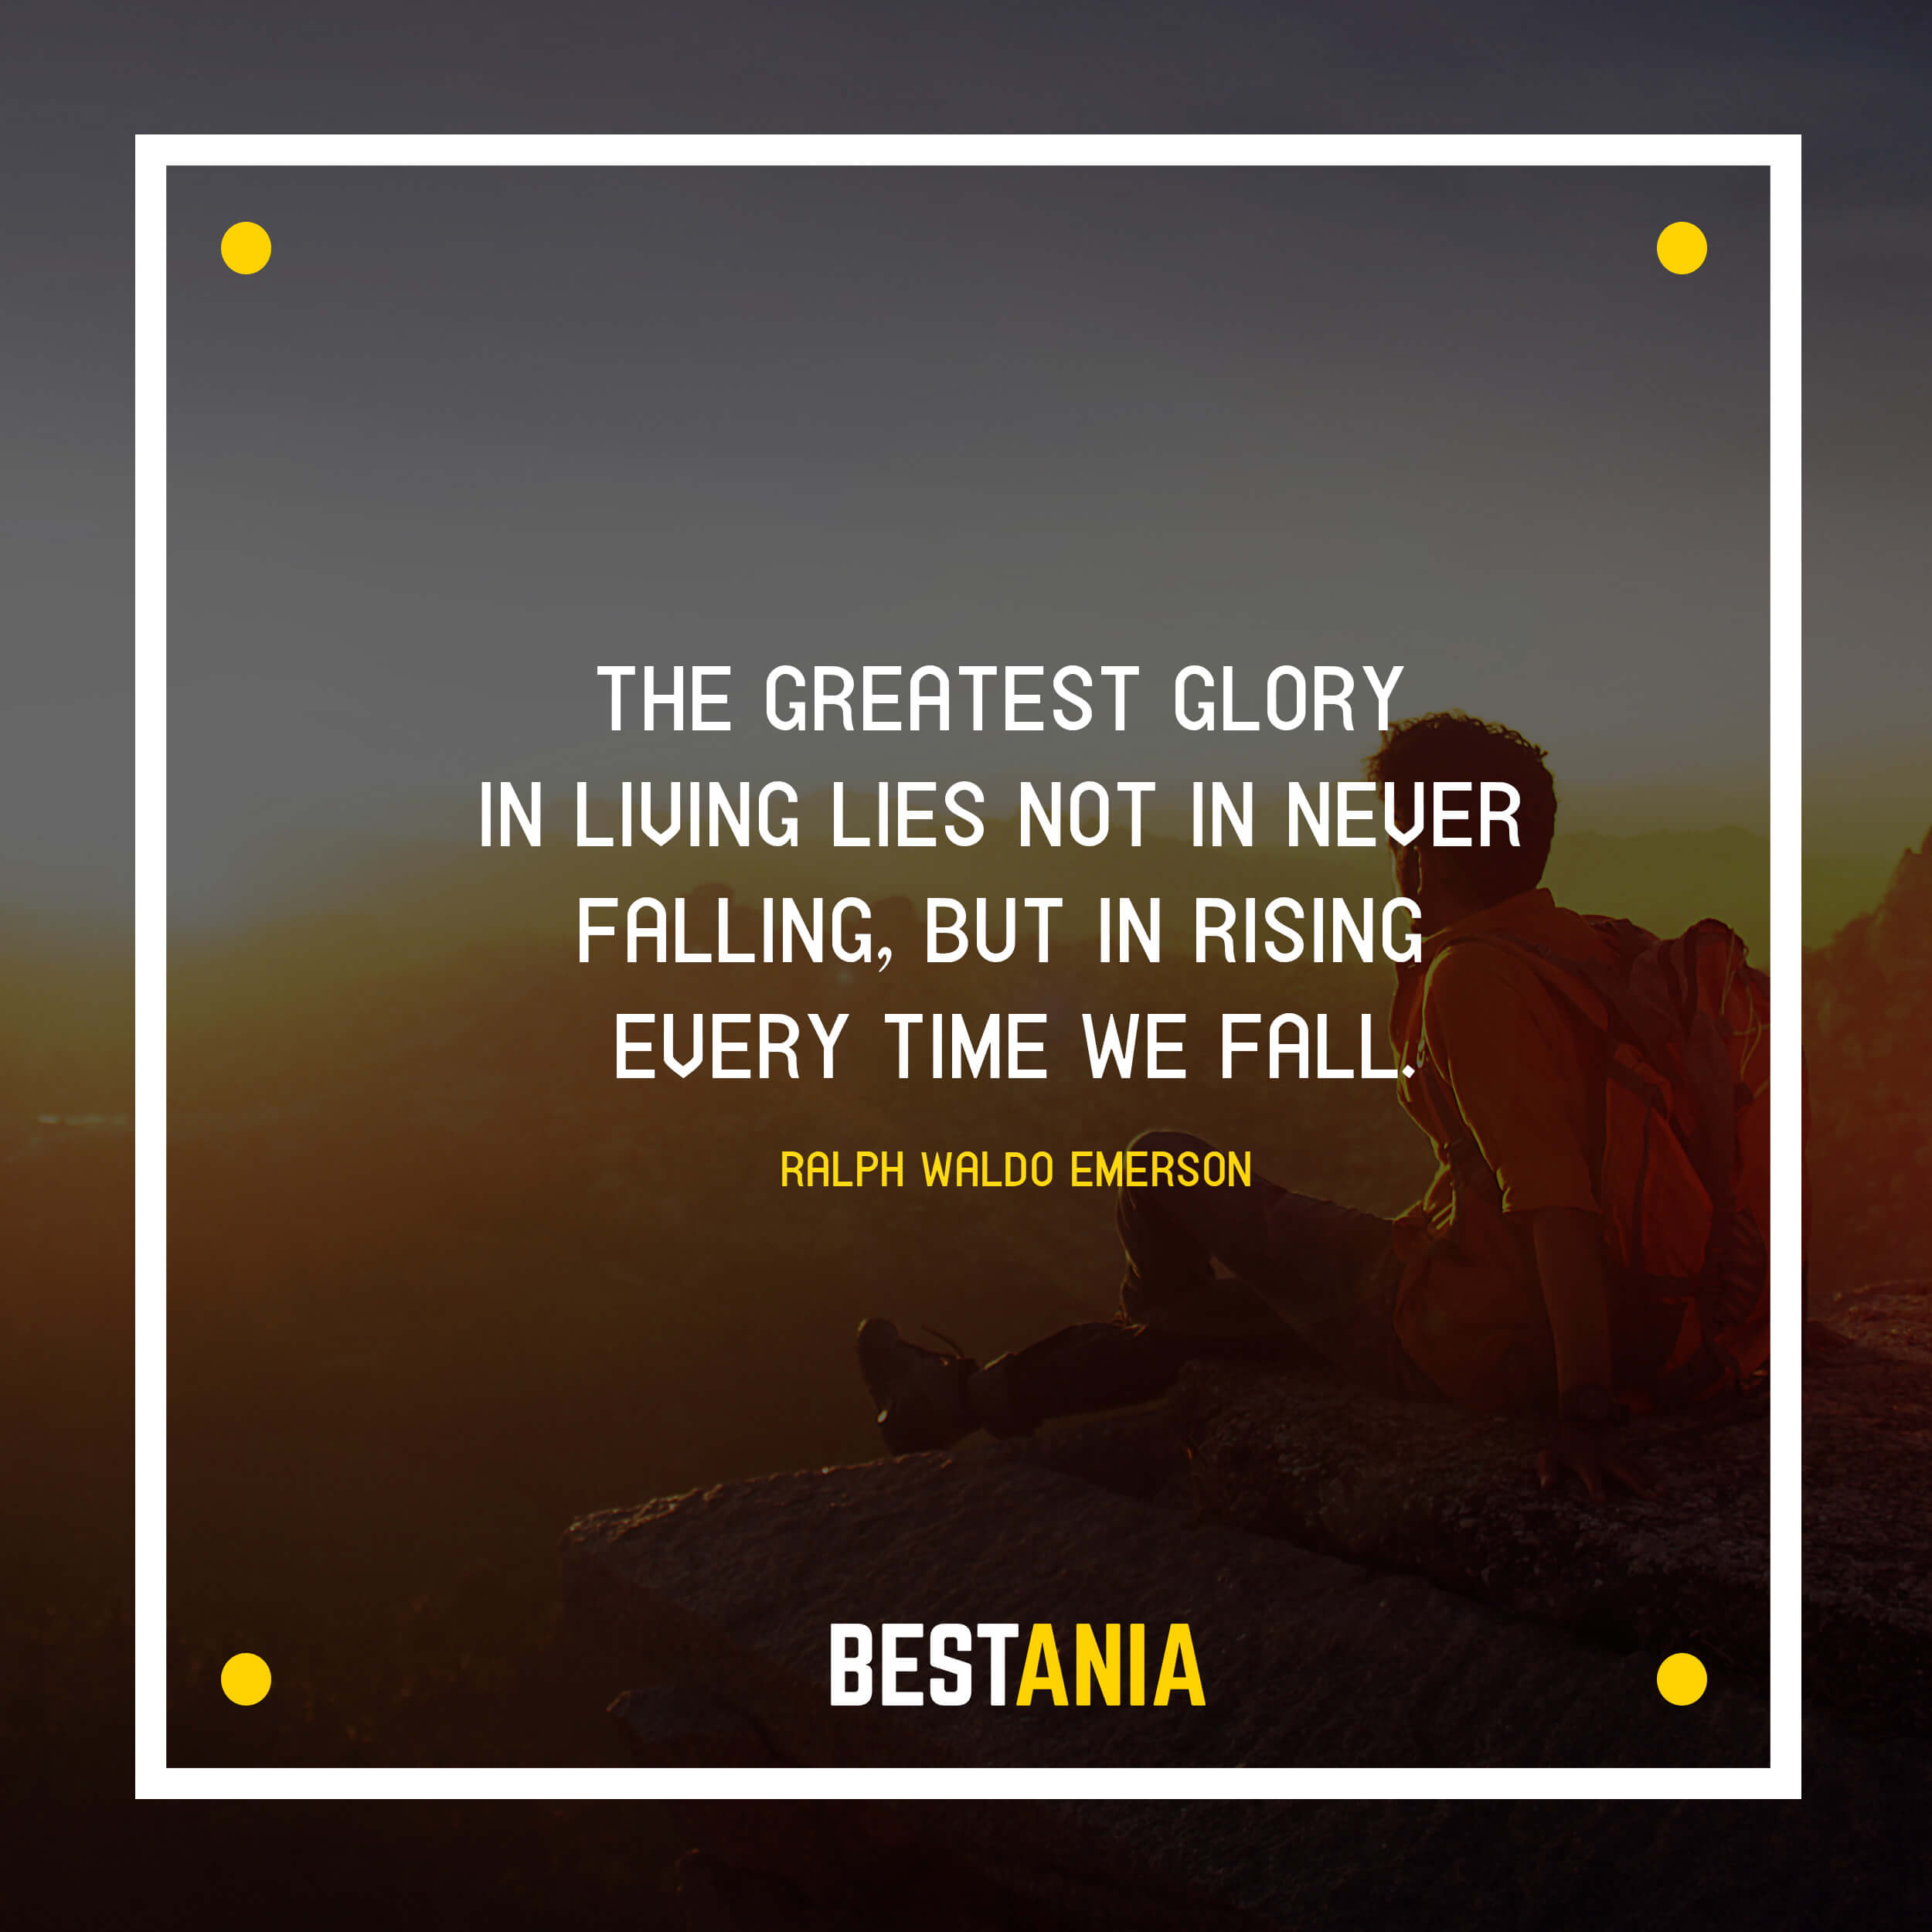 """THE GREATEST GLORY IN LIVING LIES NOT IN NEVER FALLING, BUT IN RISING EVERY TIME WE FALL."" RALPH WALDO EMERSON"